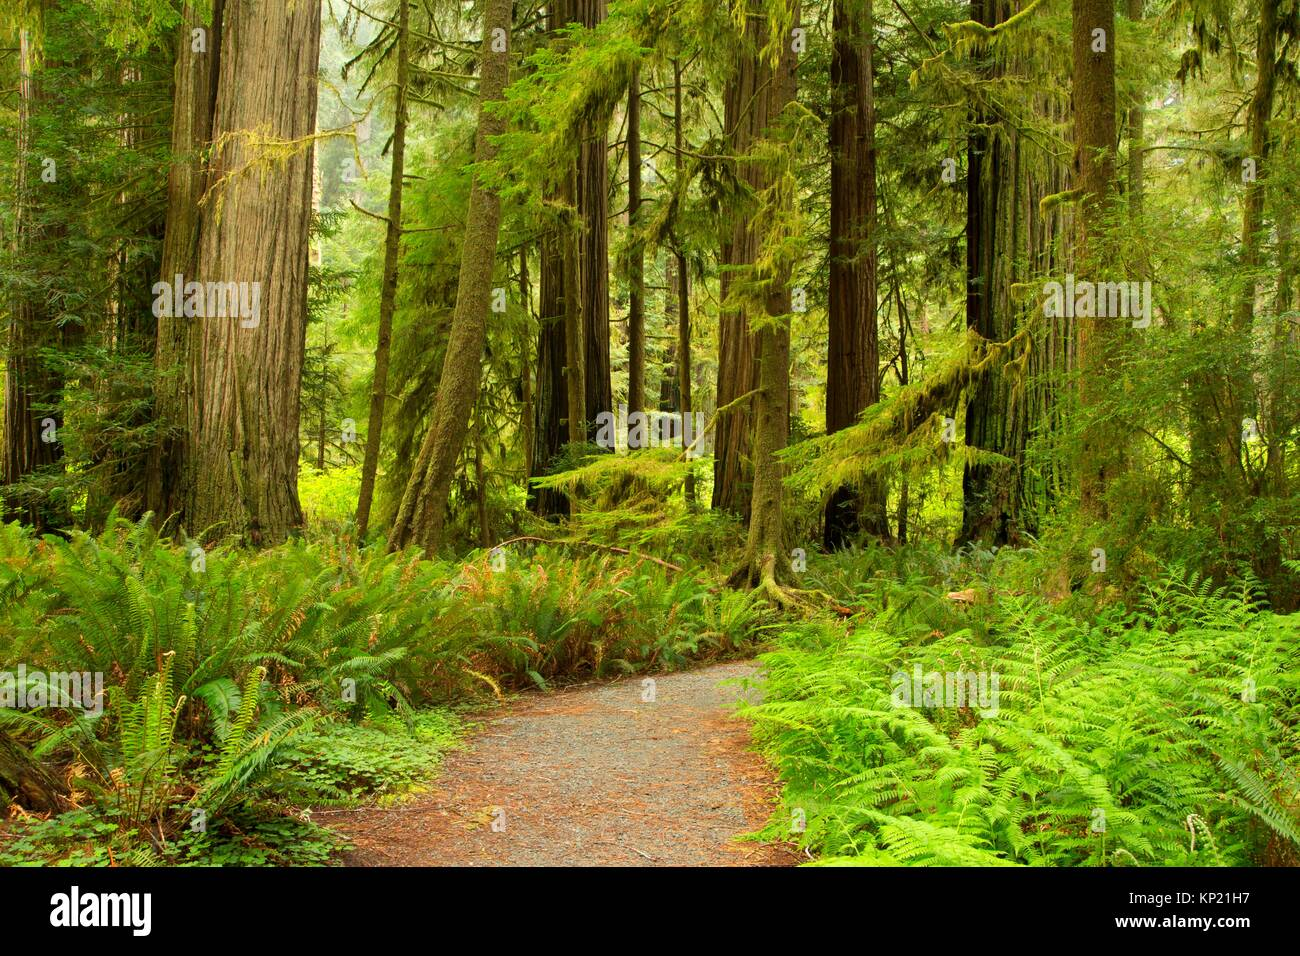 Coast redwood (Sequoia sempervirens) forest along Simpson-Reed Discovery Trail, Jedediah Smith Redwoods State Park, - Stock Image